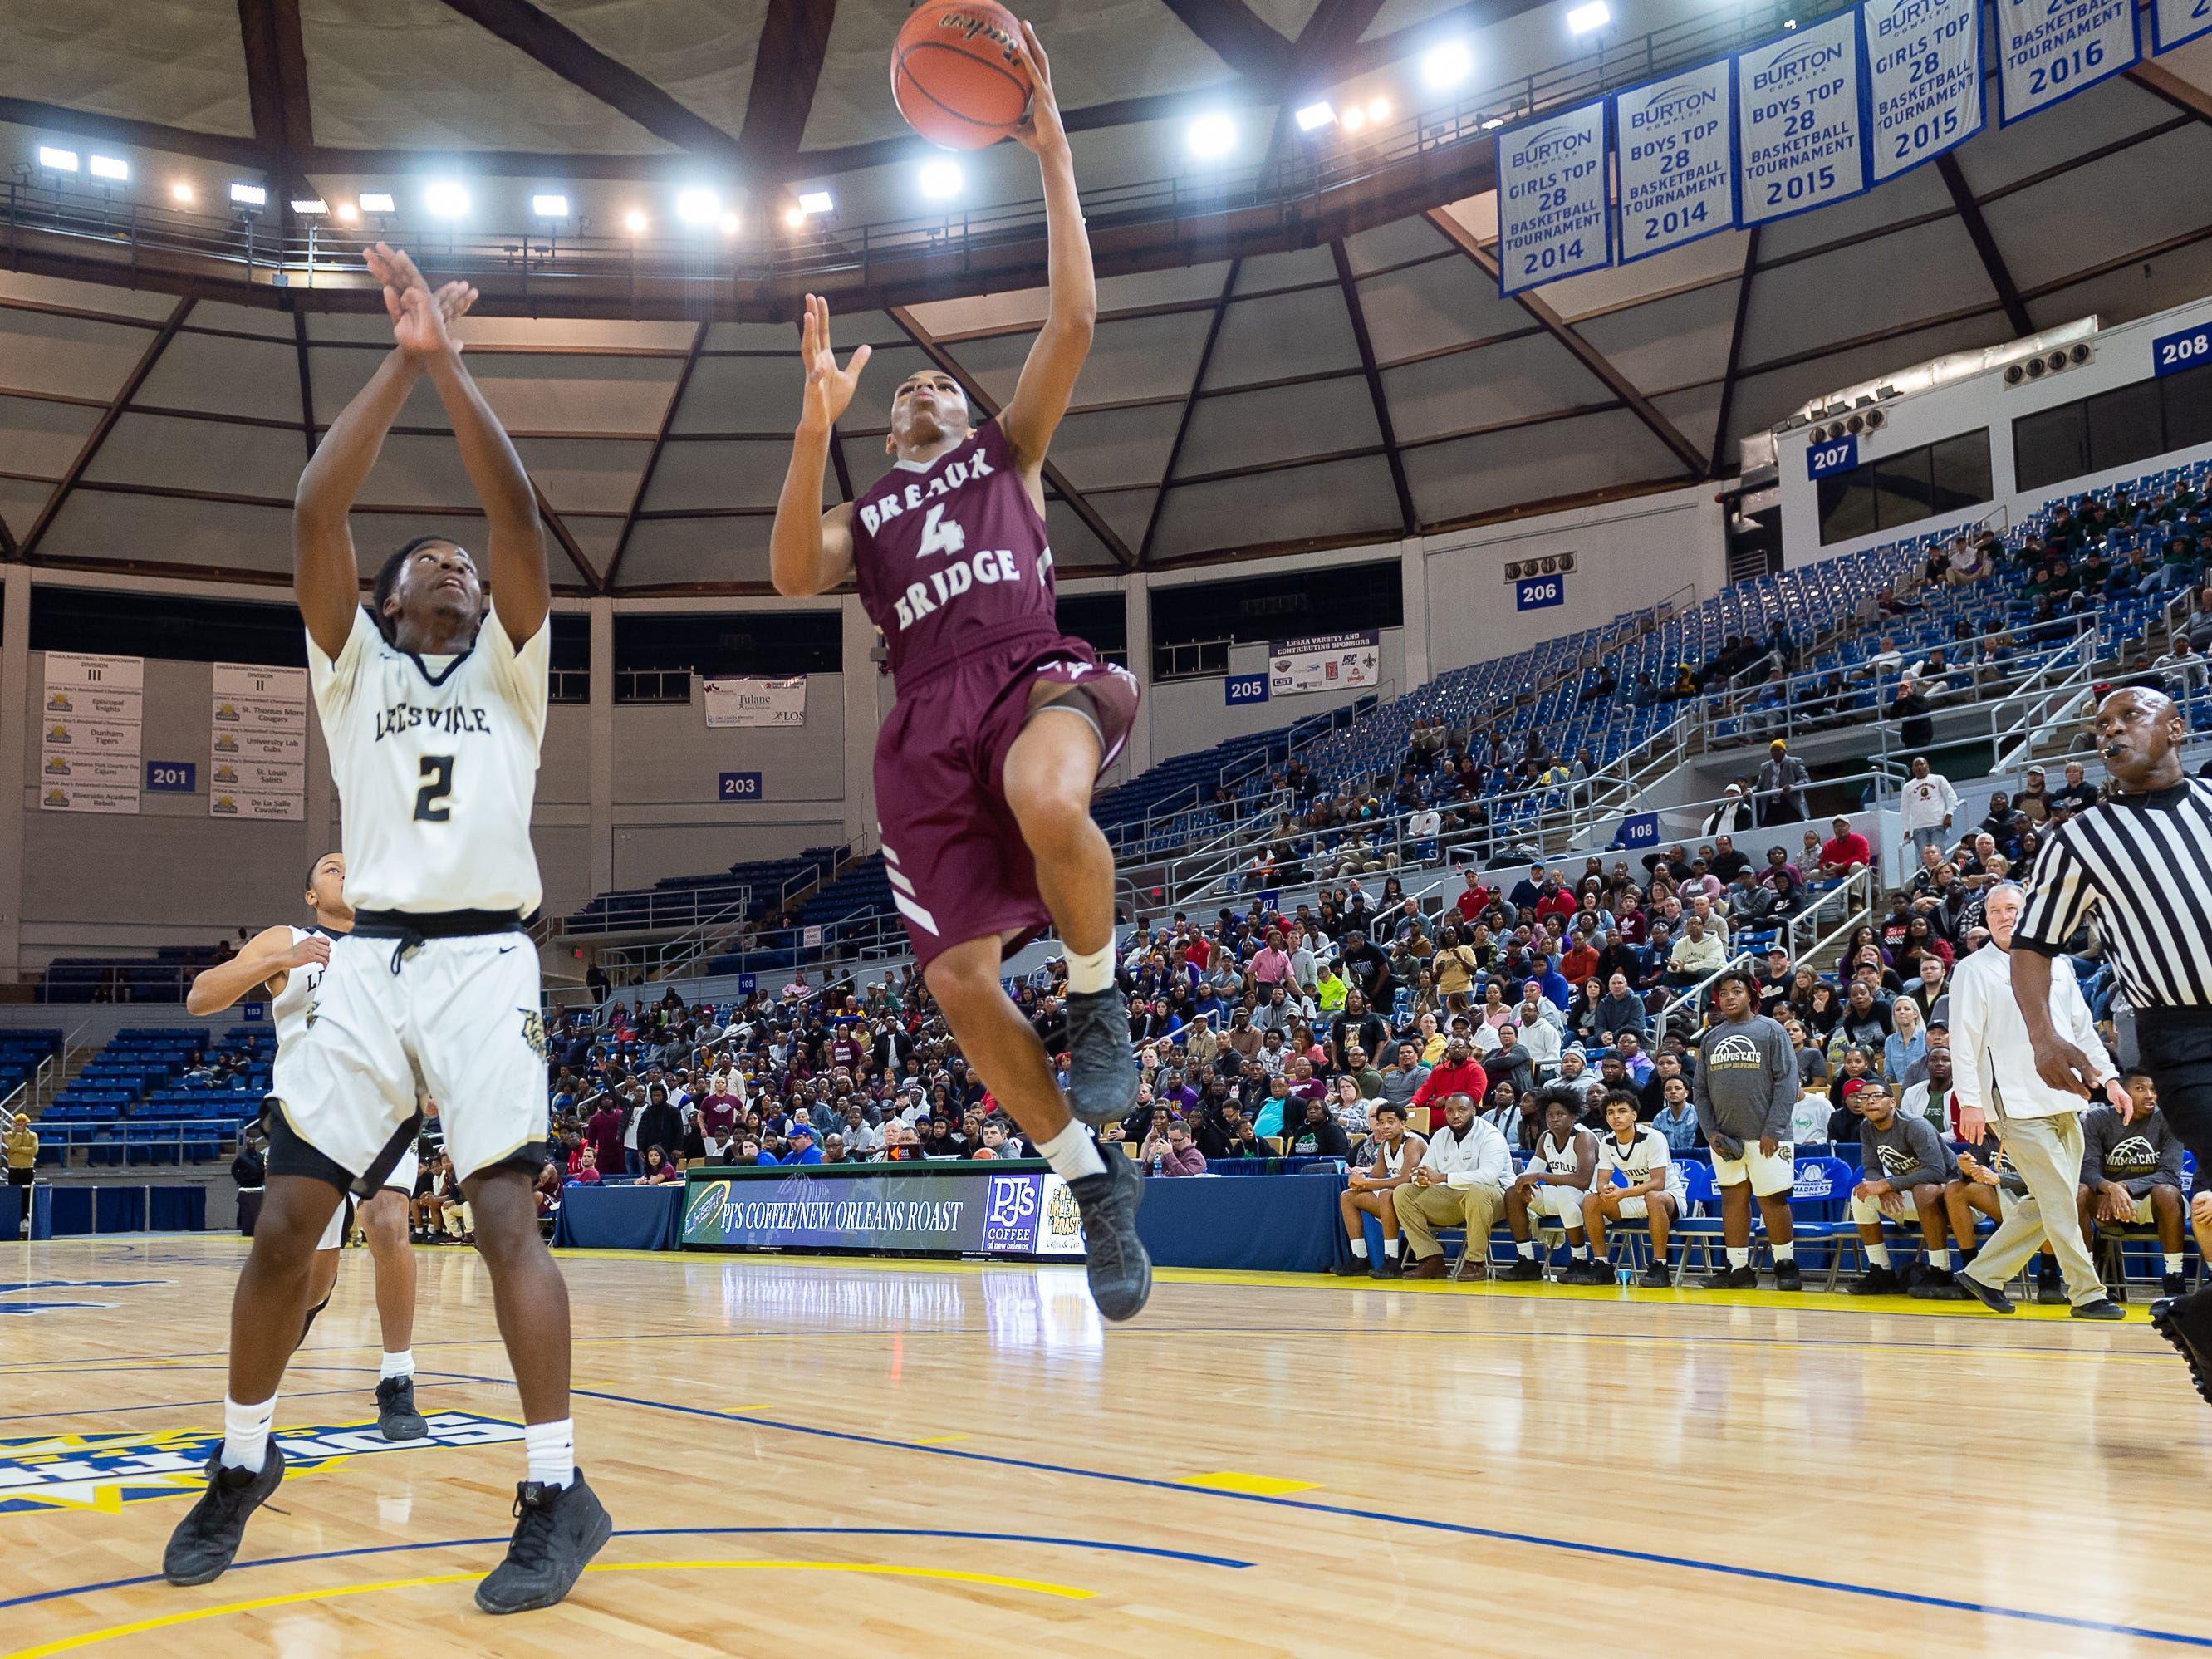 Dalton Alexander III drives to the basket as Breaux Bridge takes on Leesville in the semi final round of the LHSAA Basketball Championship Tournament. Tuesday, March 5, 2019.